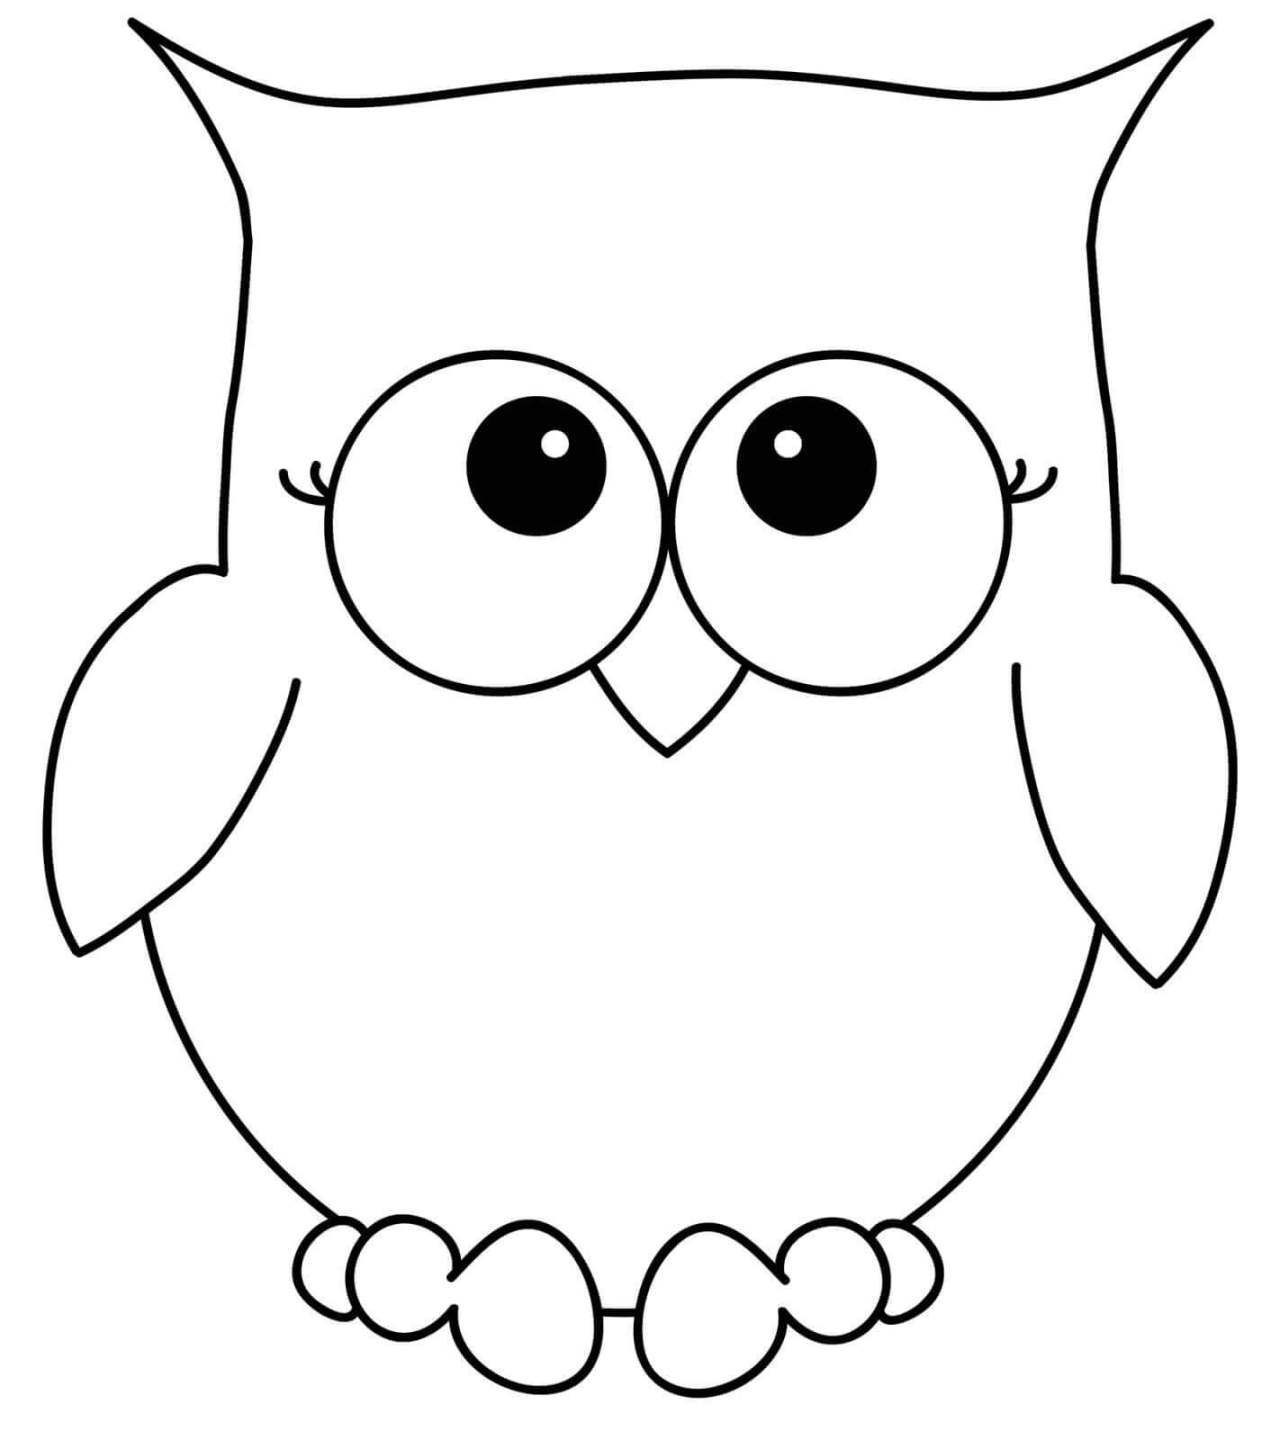 halloween-coloring-page-28 Simple Owl Drawing, Cute Owl ...